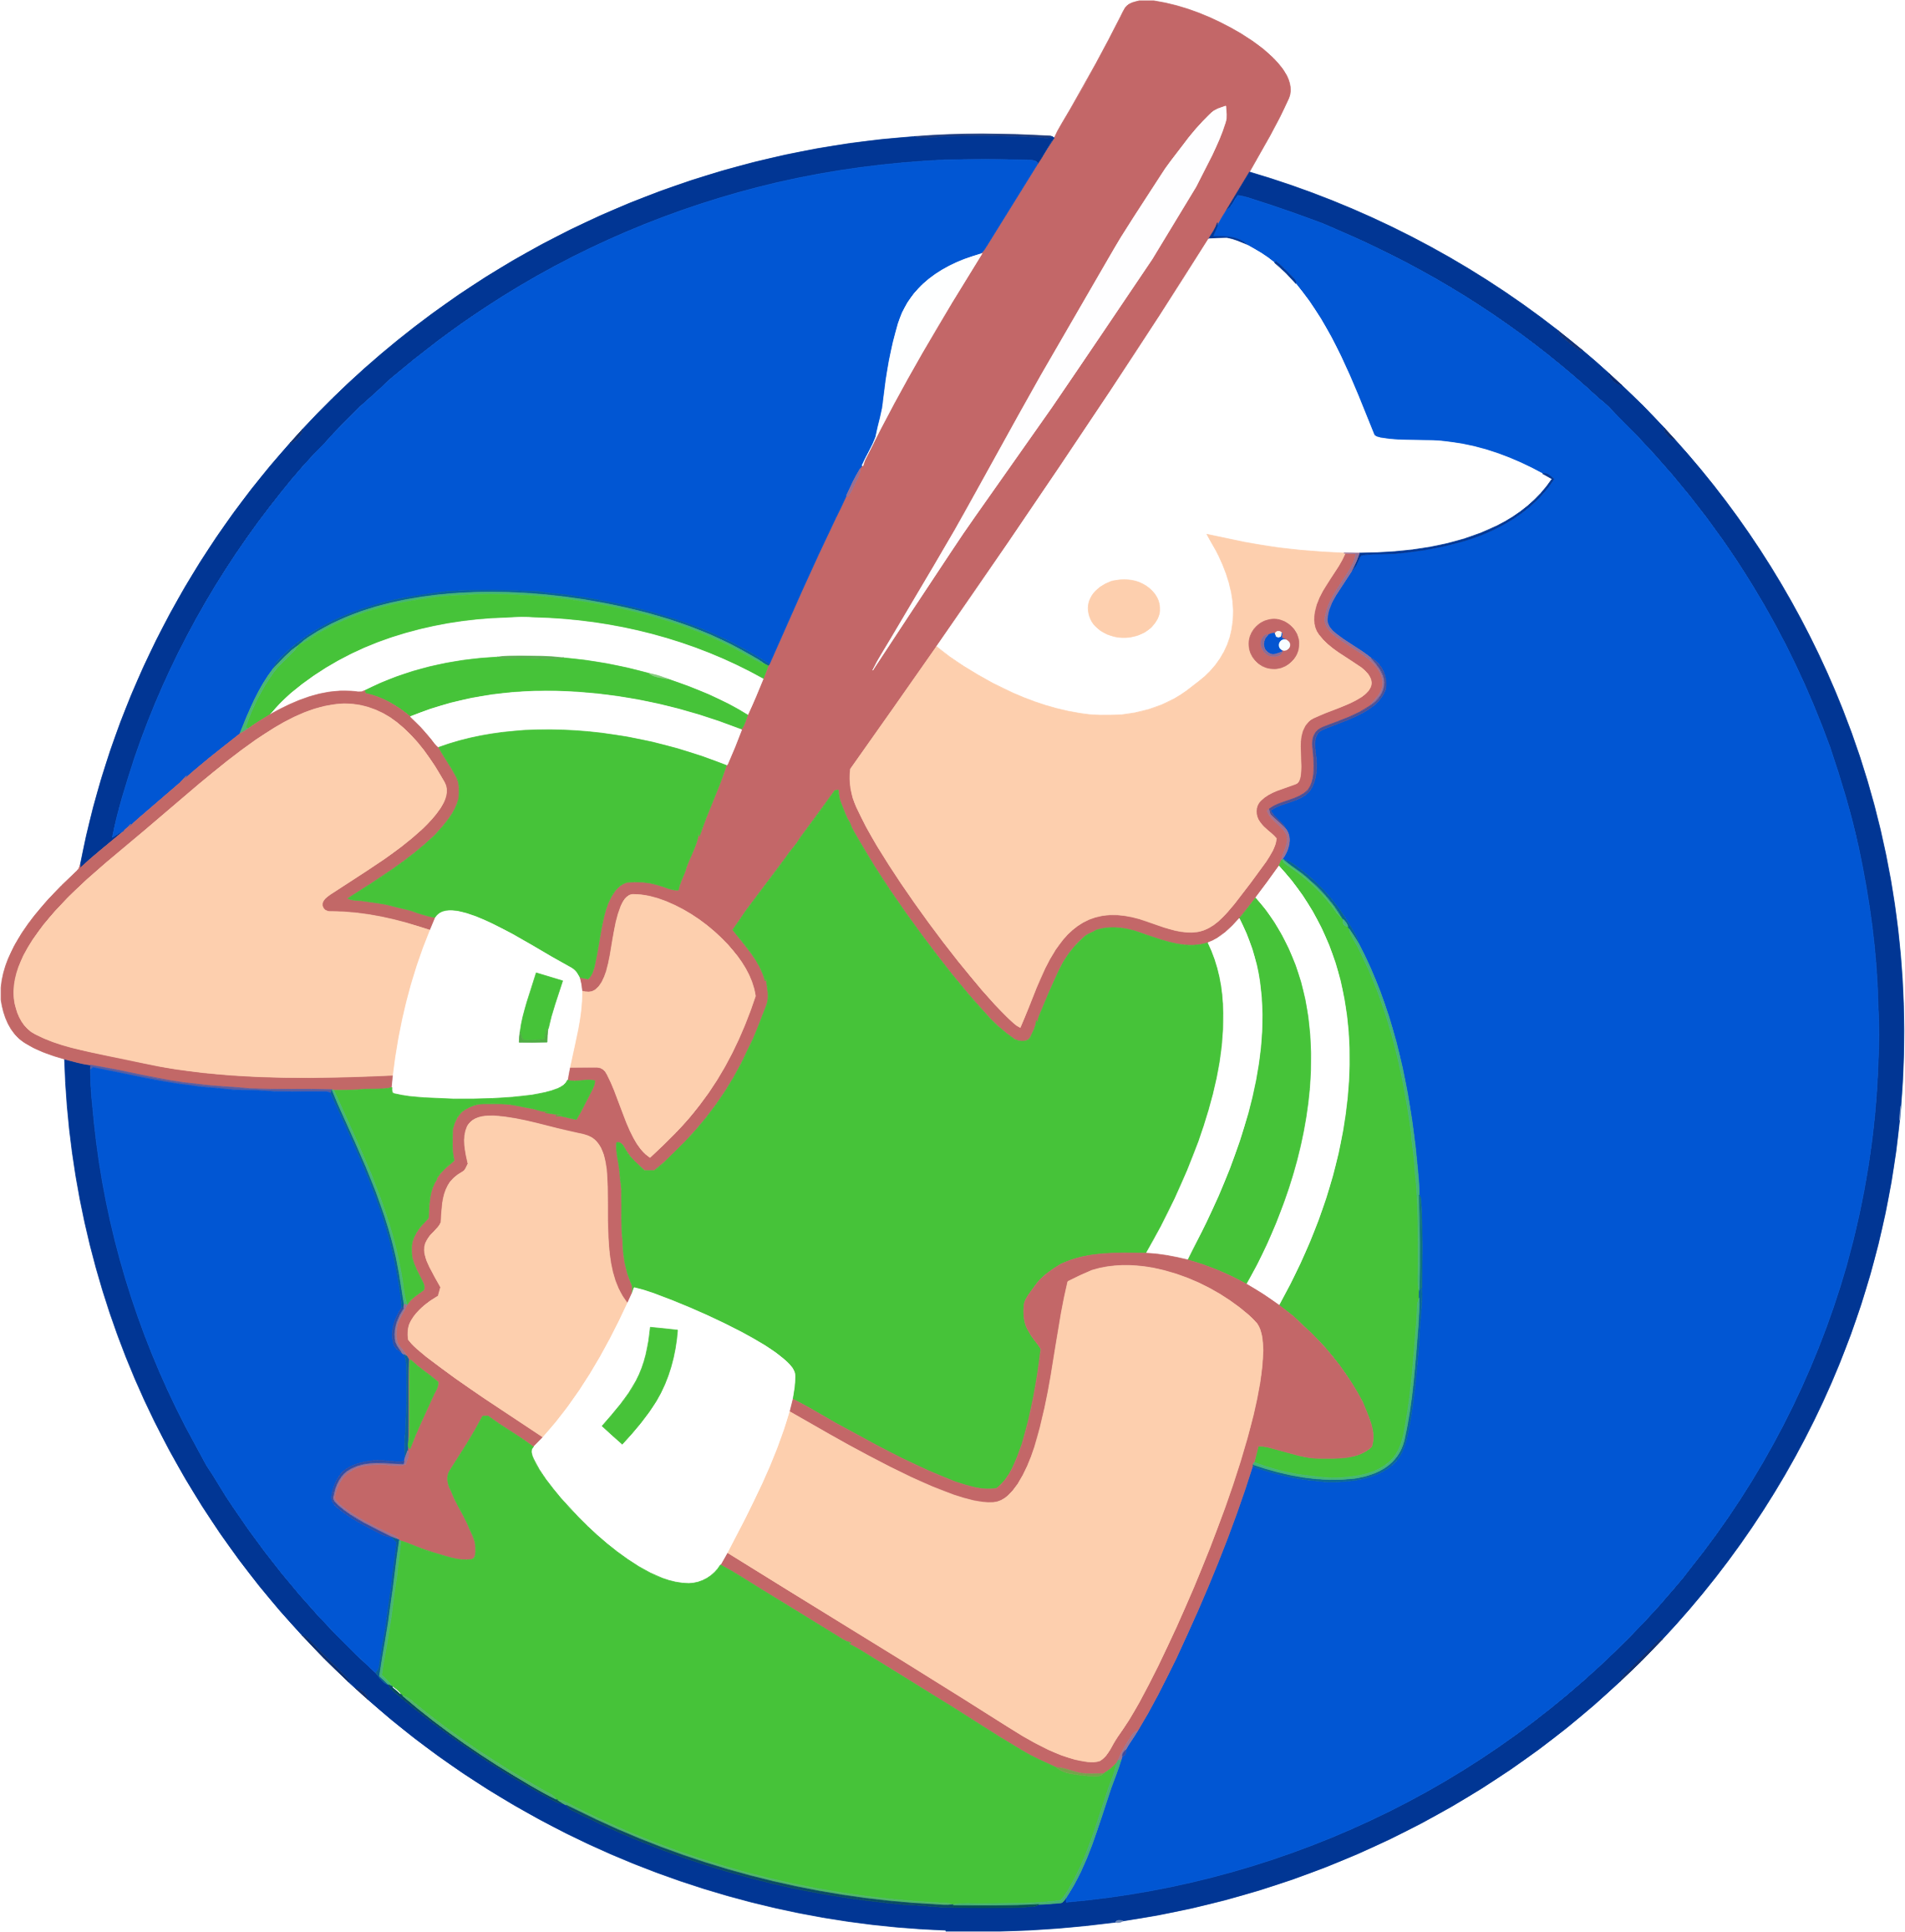 Boy icon big image. Game clipart baseball